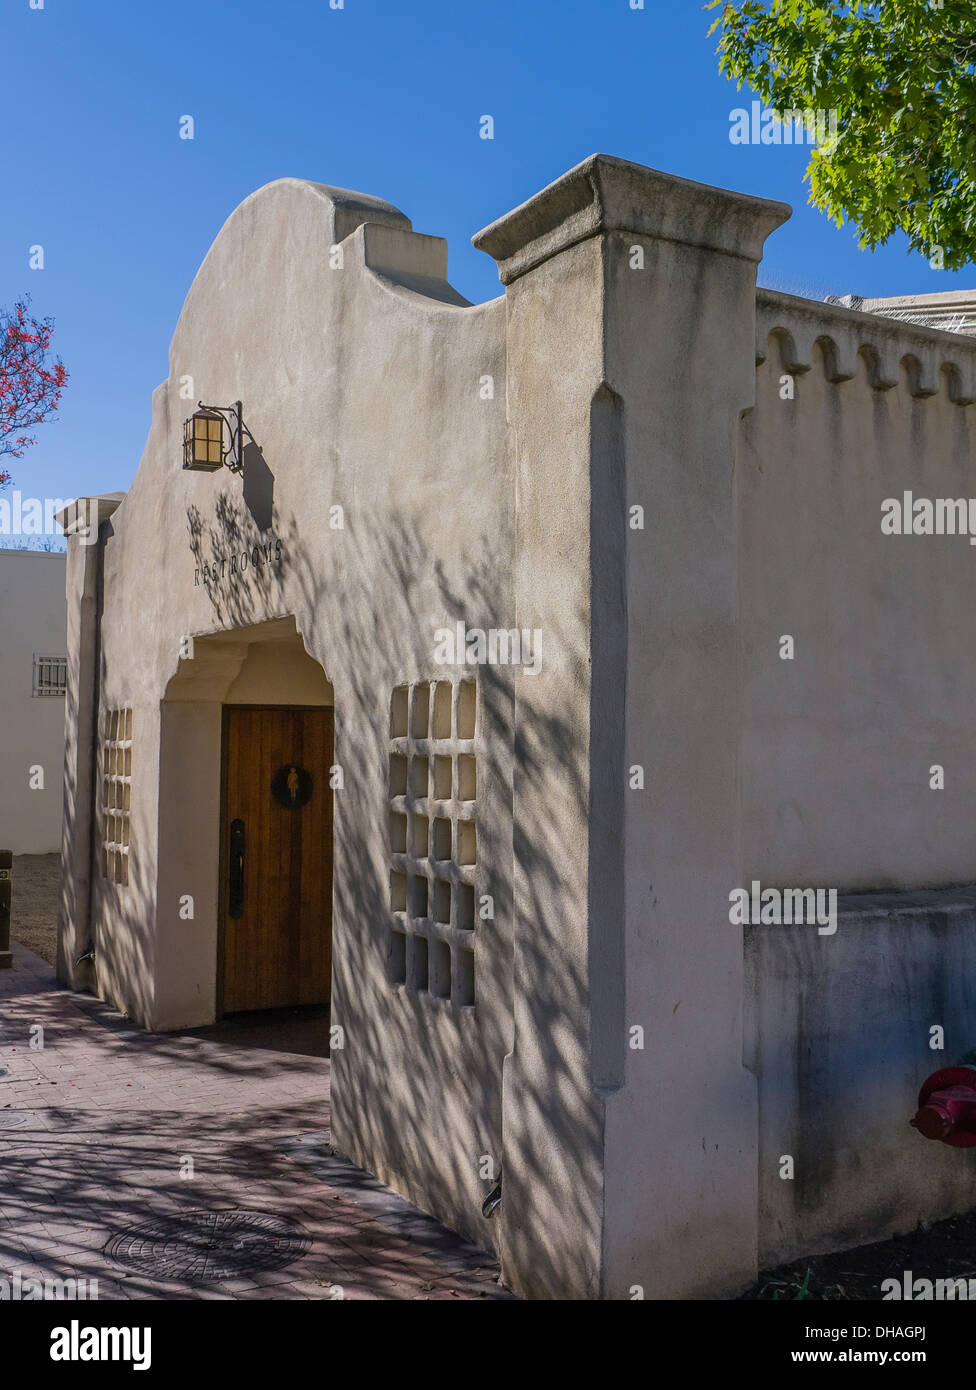 Adobe building in Southwestern style architecture made up of a